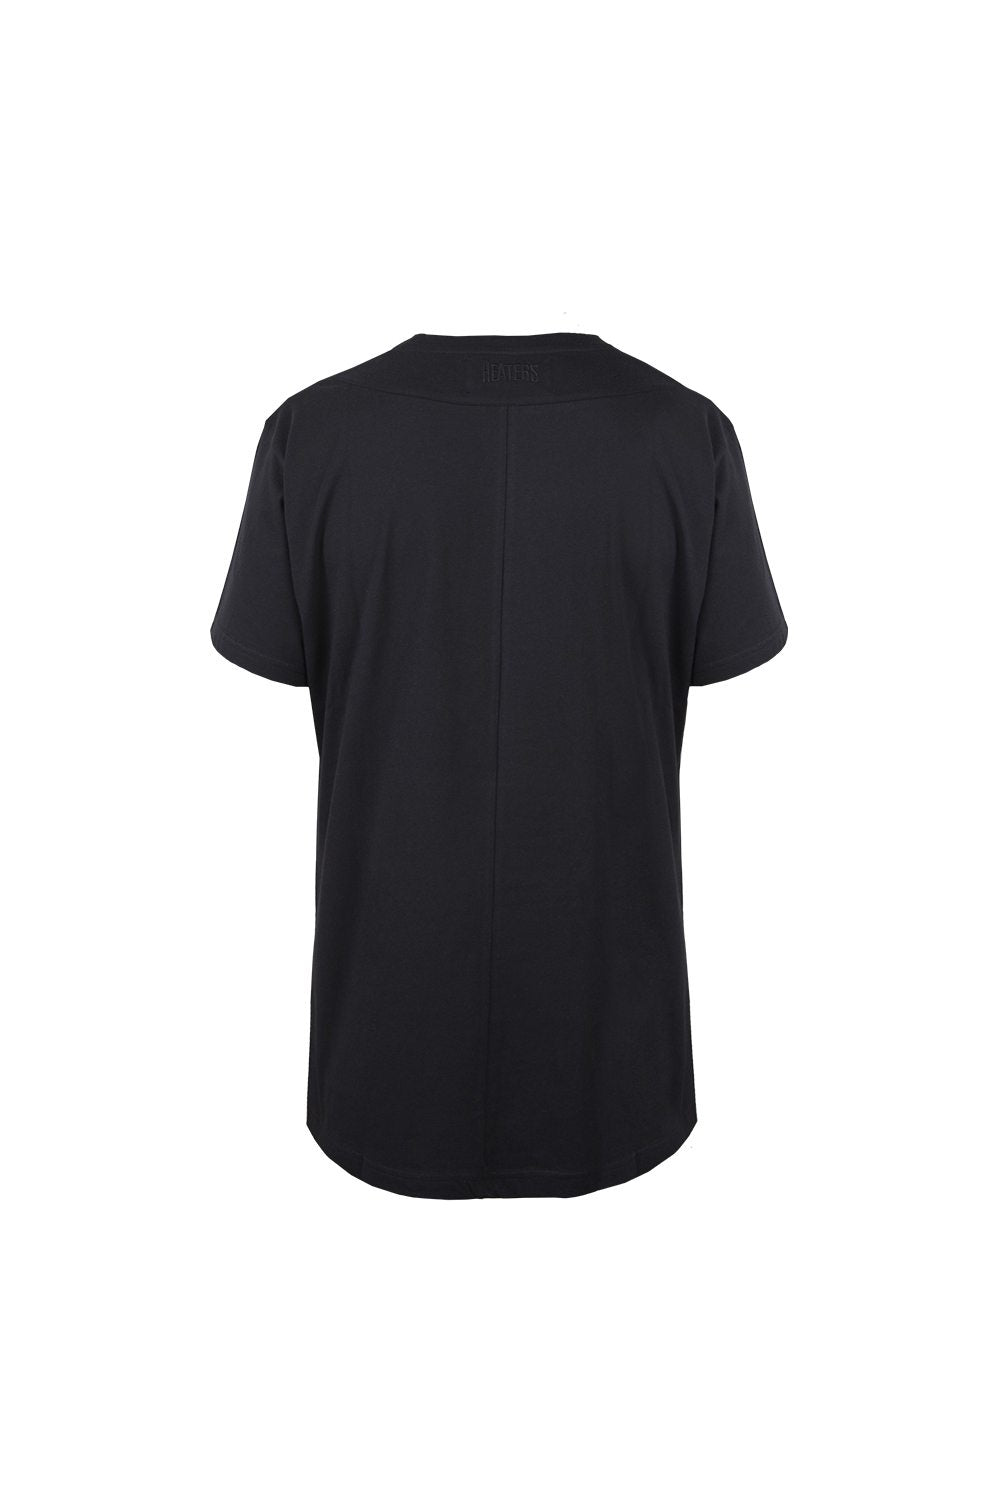 ESSENTIAL TEE BLACK